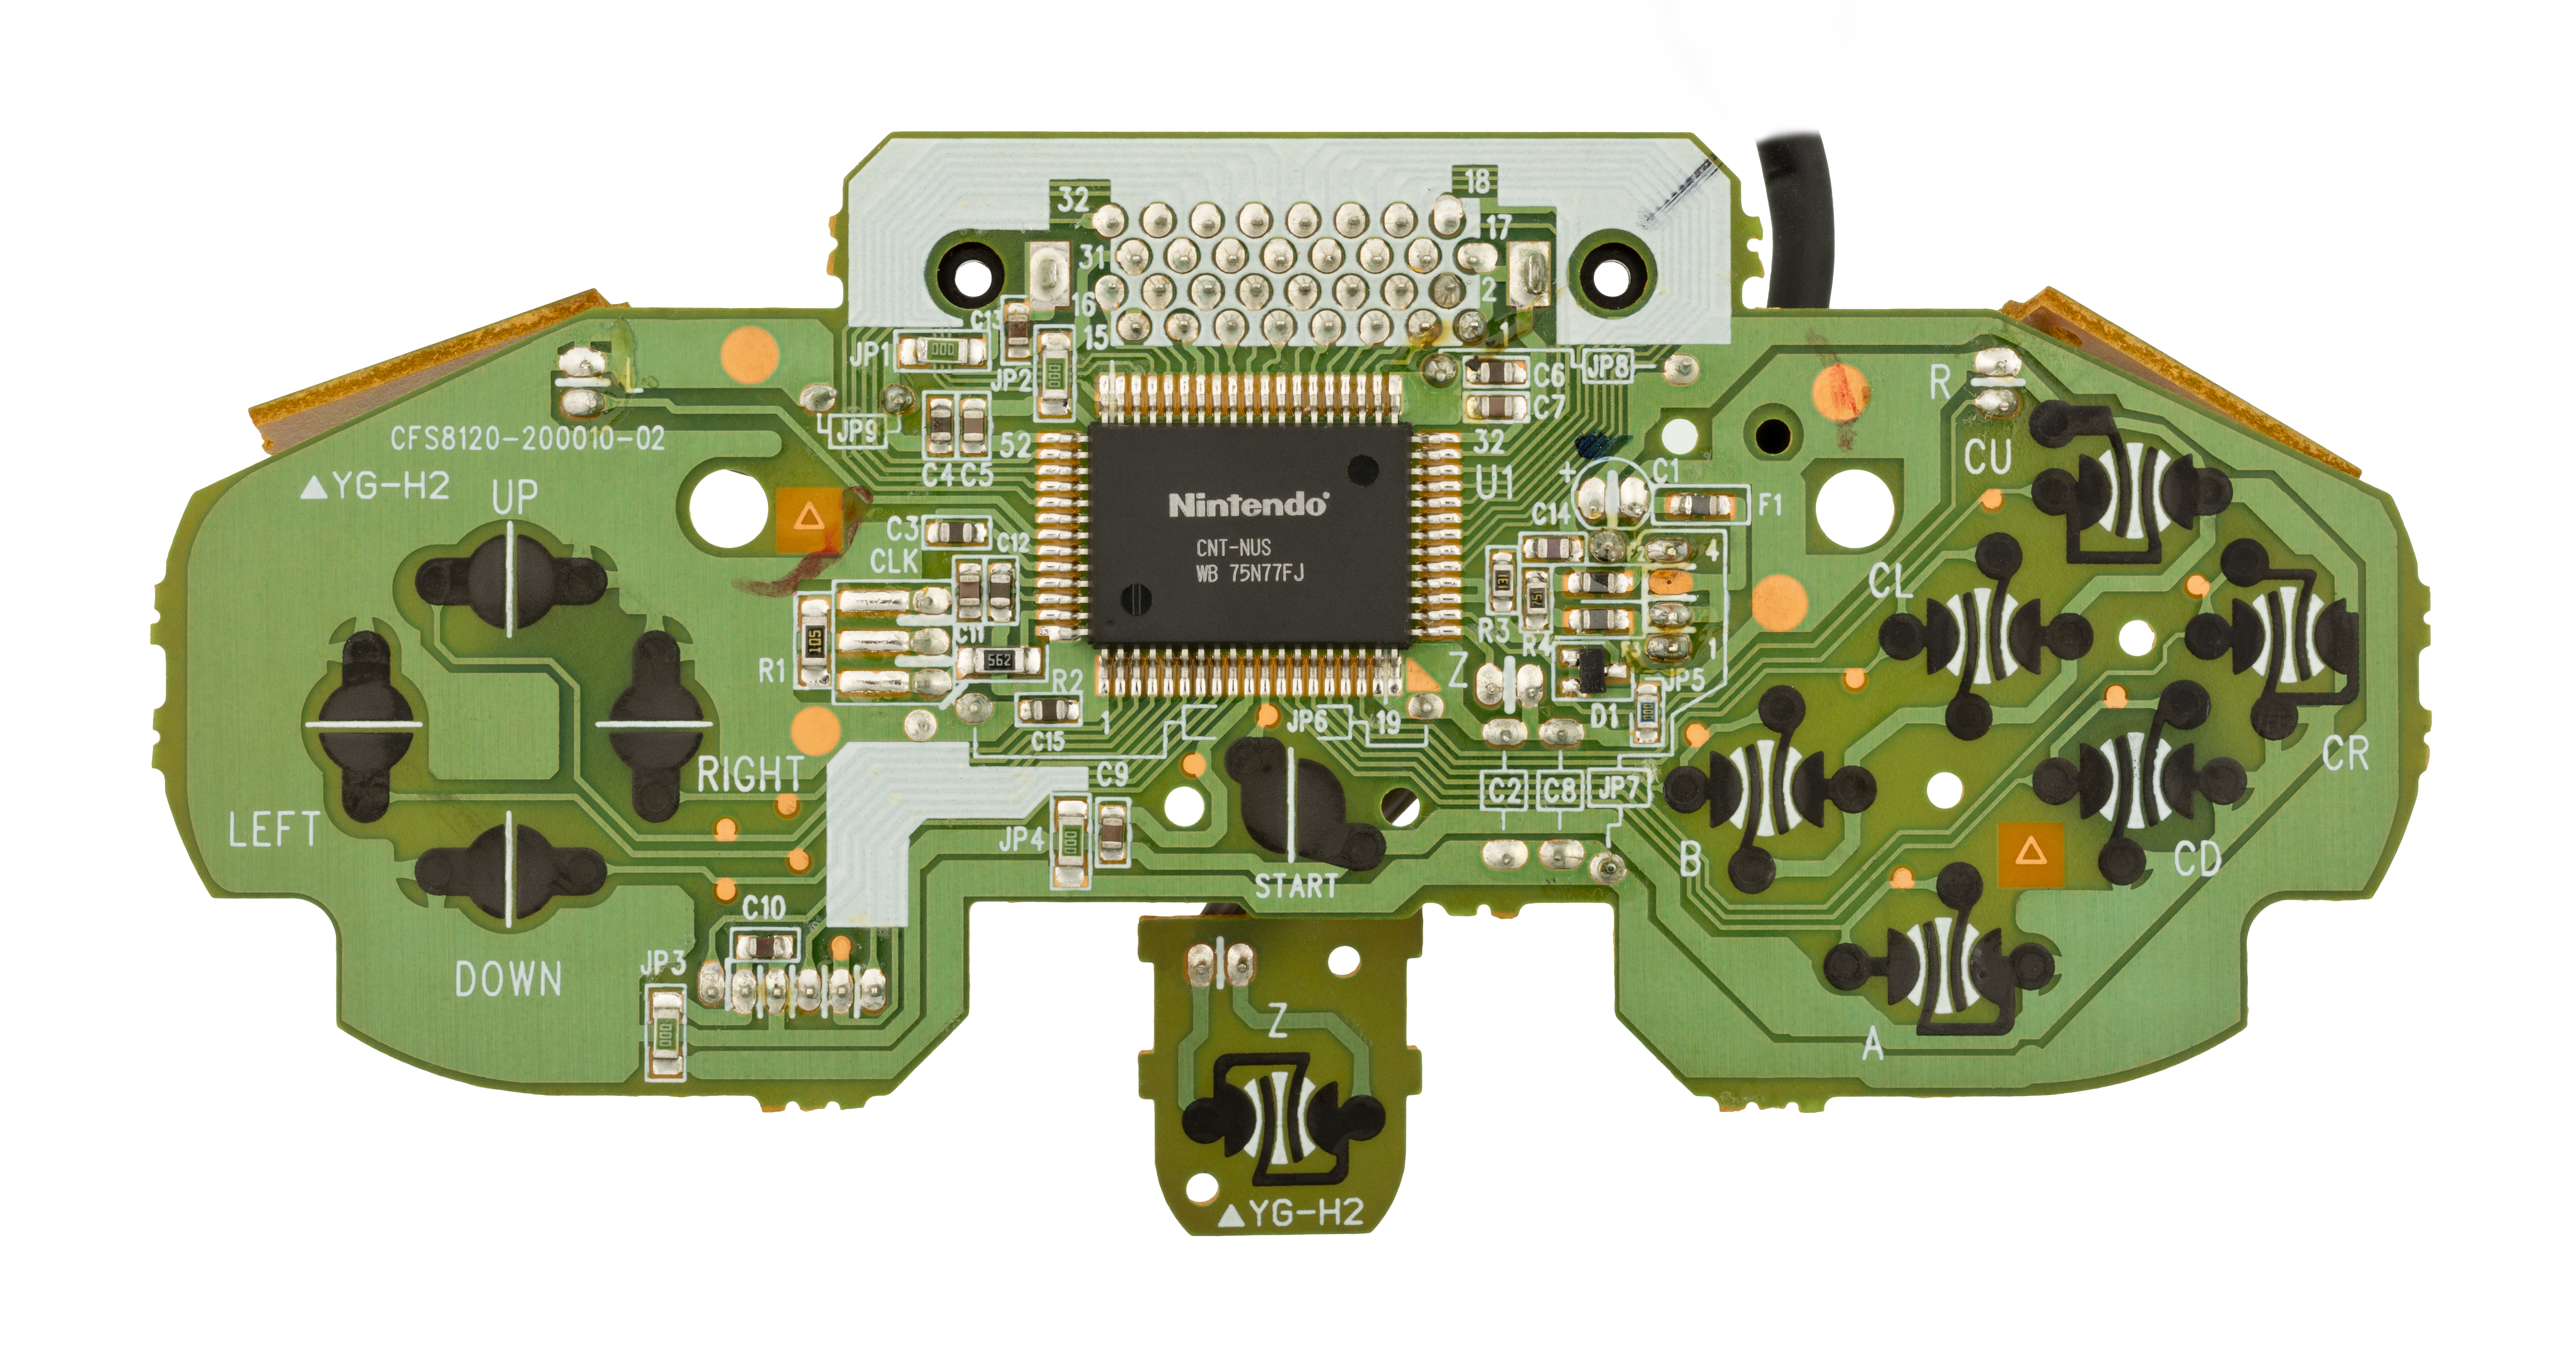 WRG-9159] N64 Wiring Diagram on